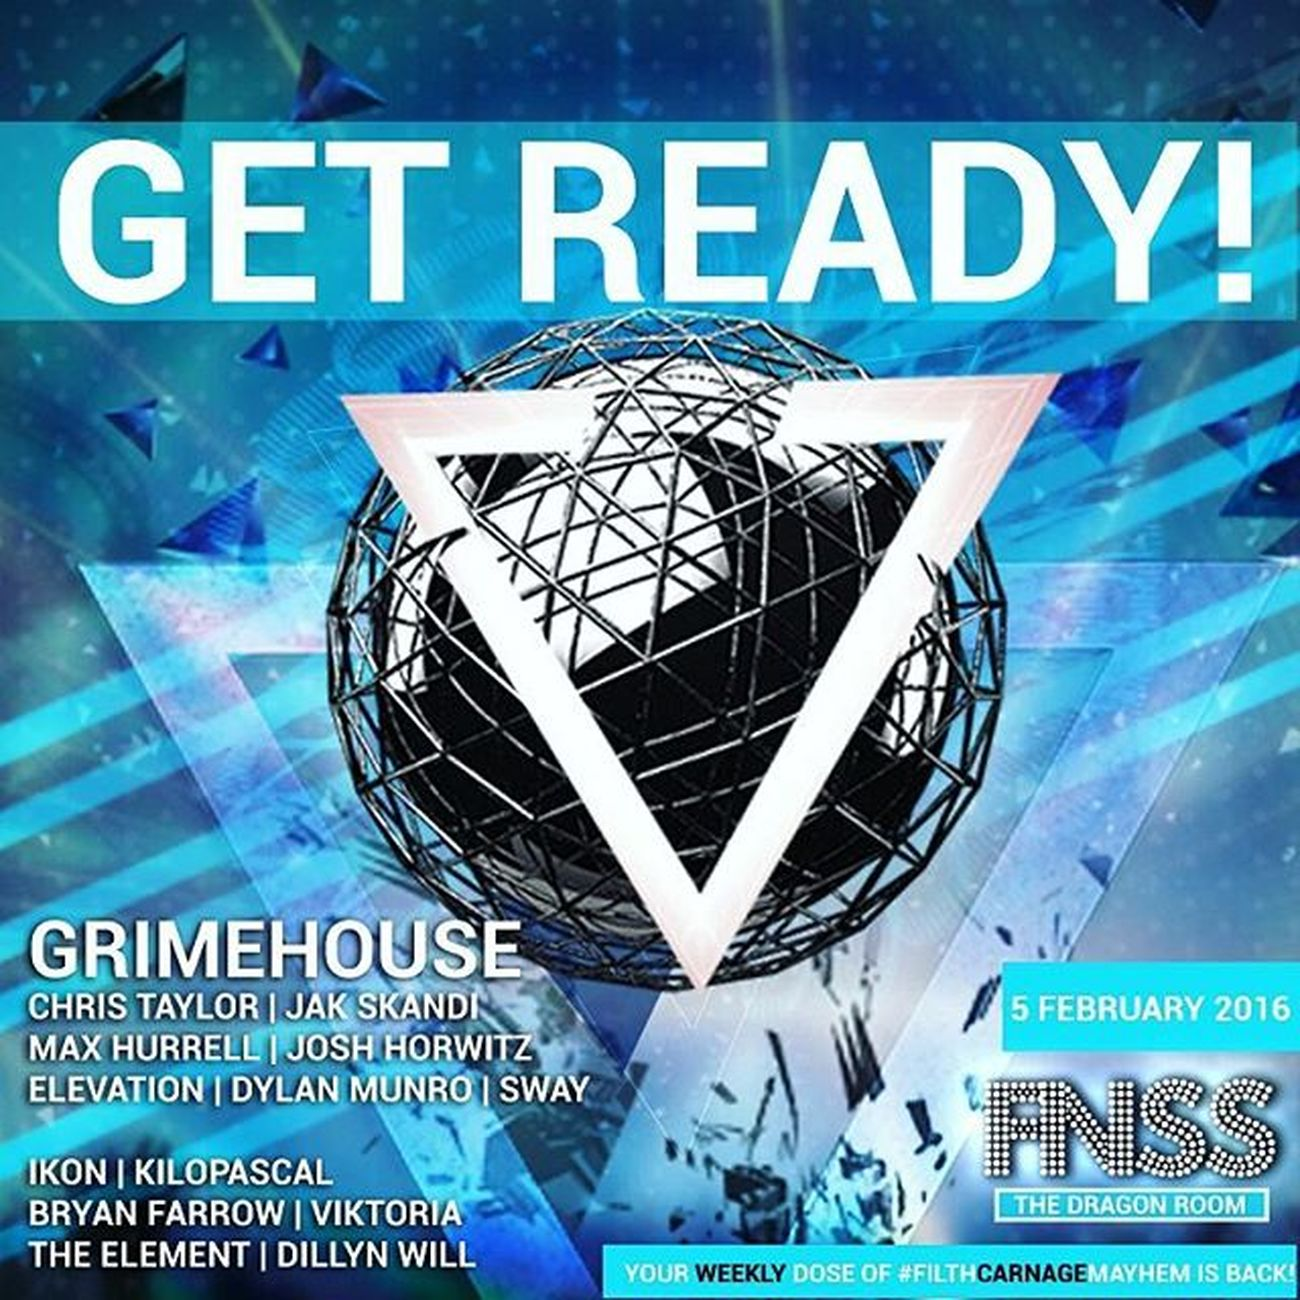 Fnss is back this Friday! 💃 Message me for info 😁 x Fnss5th